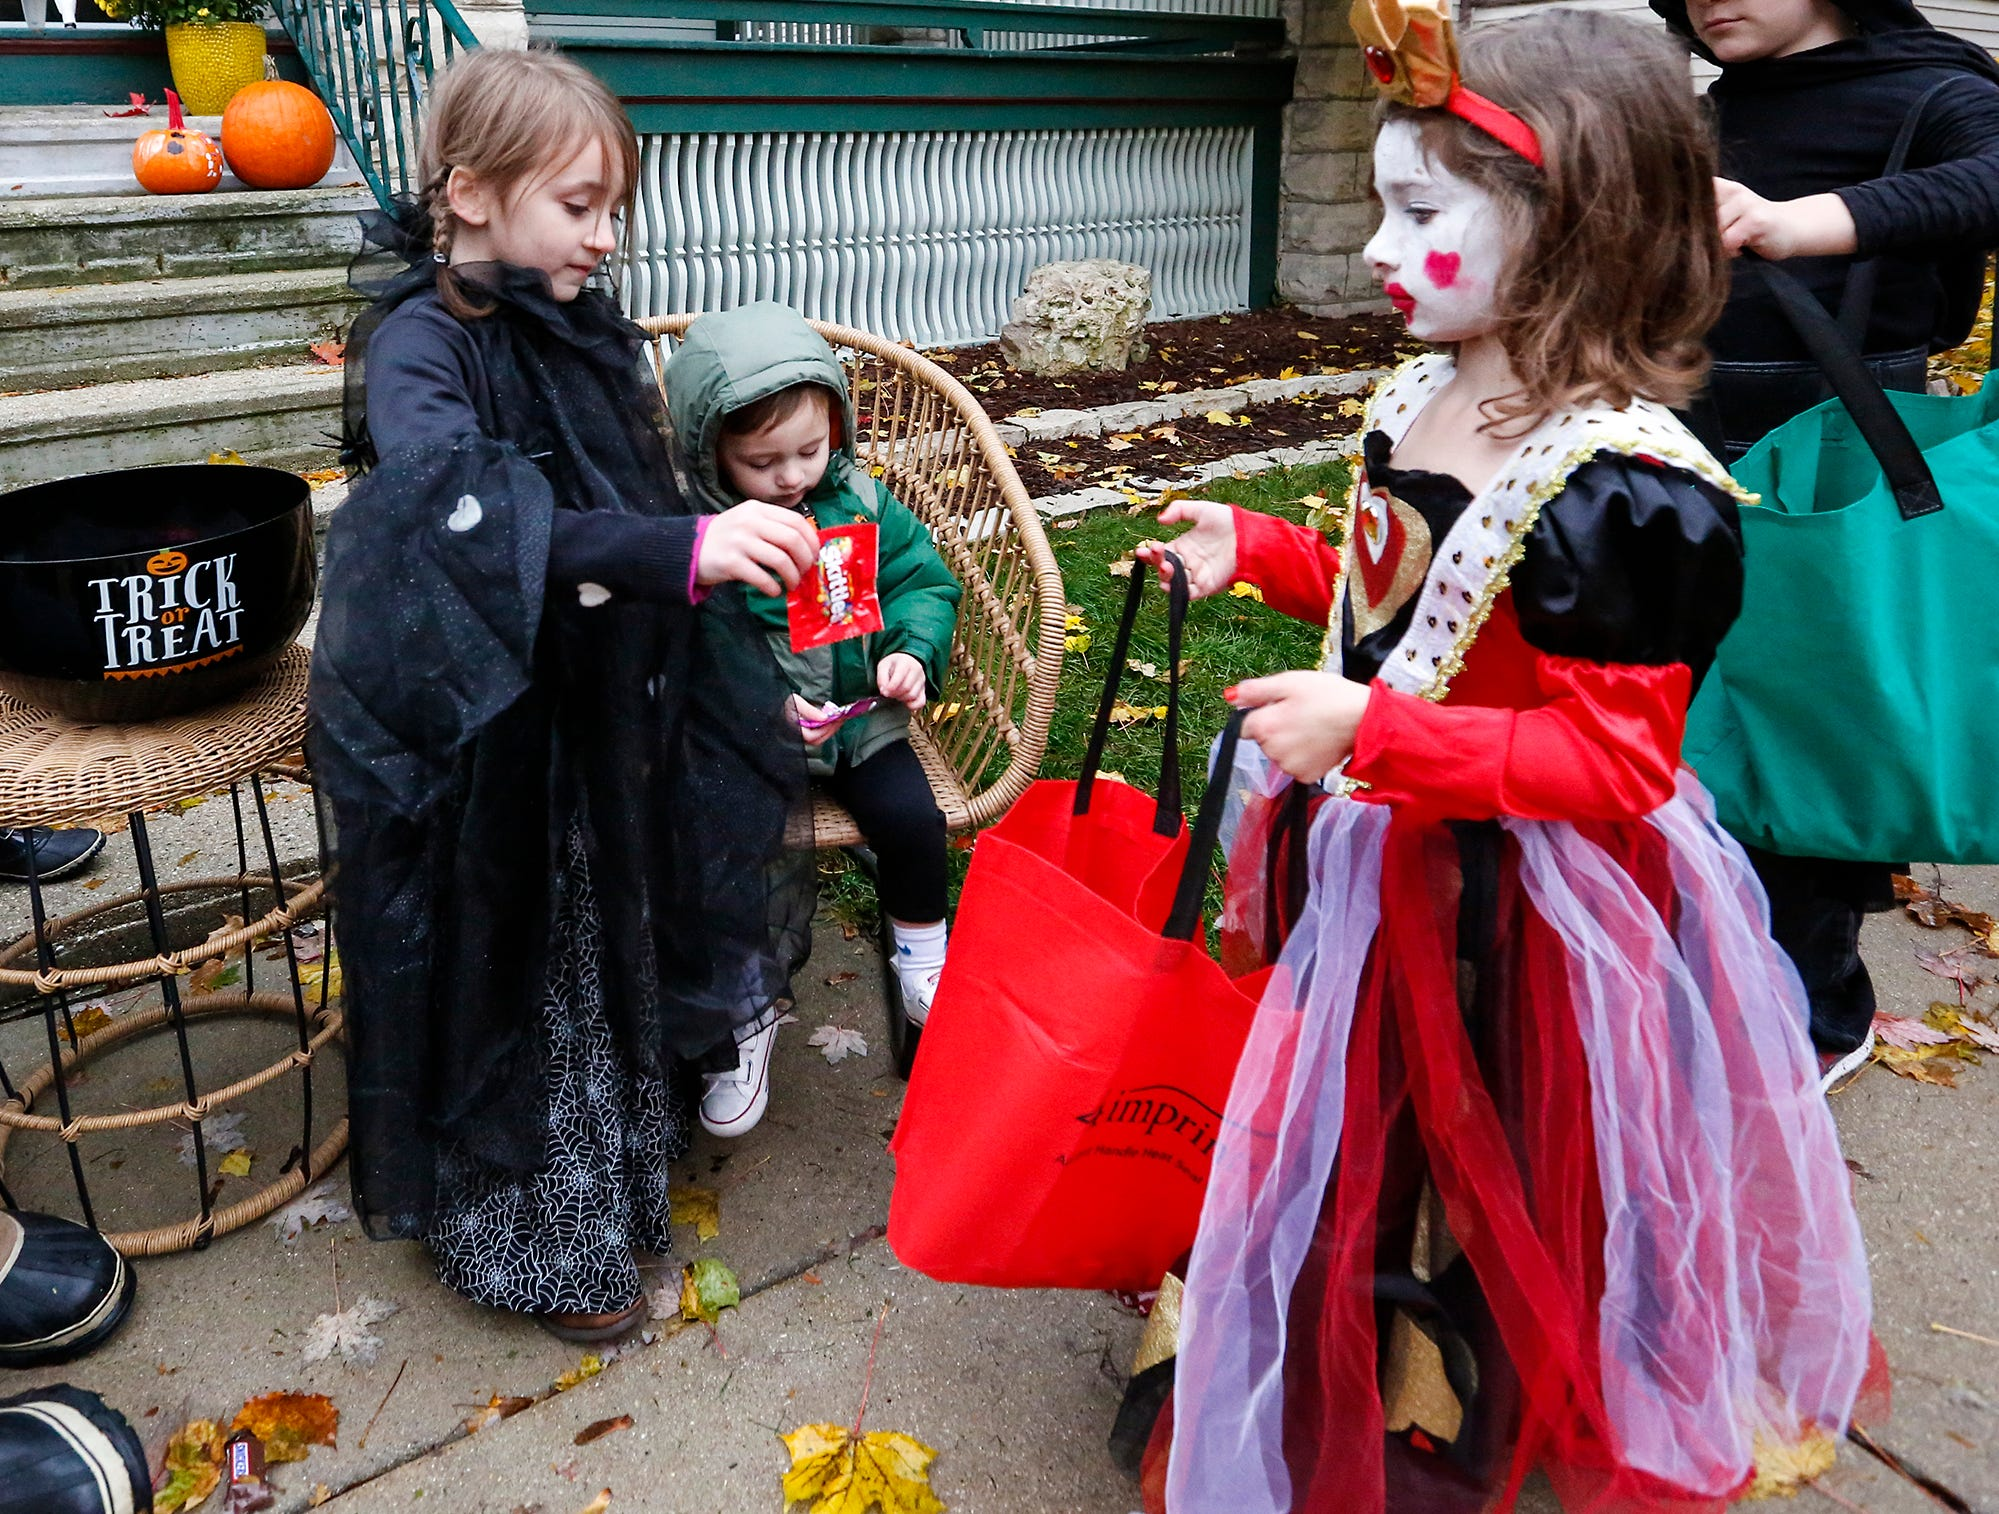 Honor and Wells Werdin hand out candy to Paige Bonney of Fond du Lac Sunday, October 28, 2018 during trick or treat in Fond du Lac, Wisconsin. Doug Raflik/USA TODAY NETWORK-Wisconsin